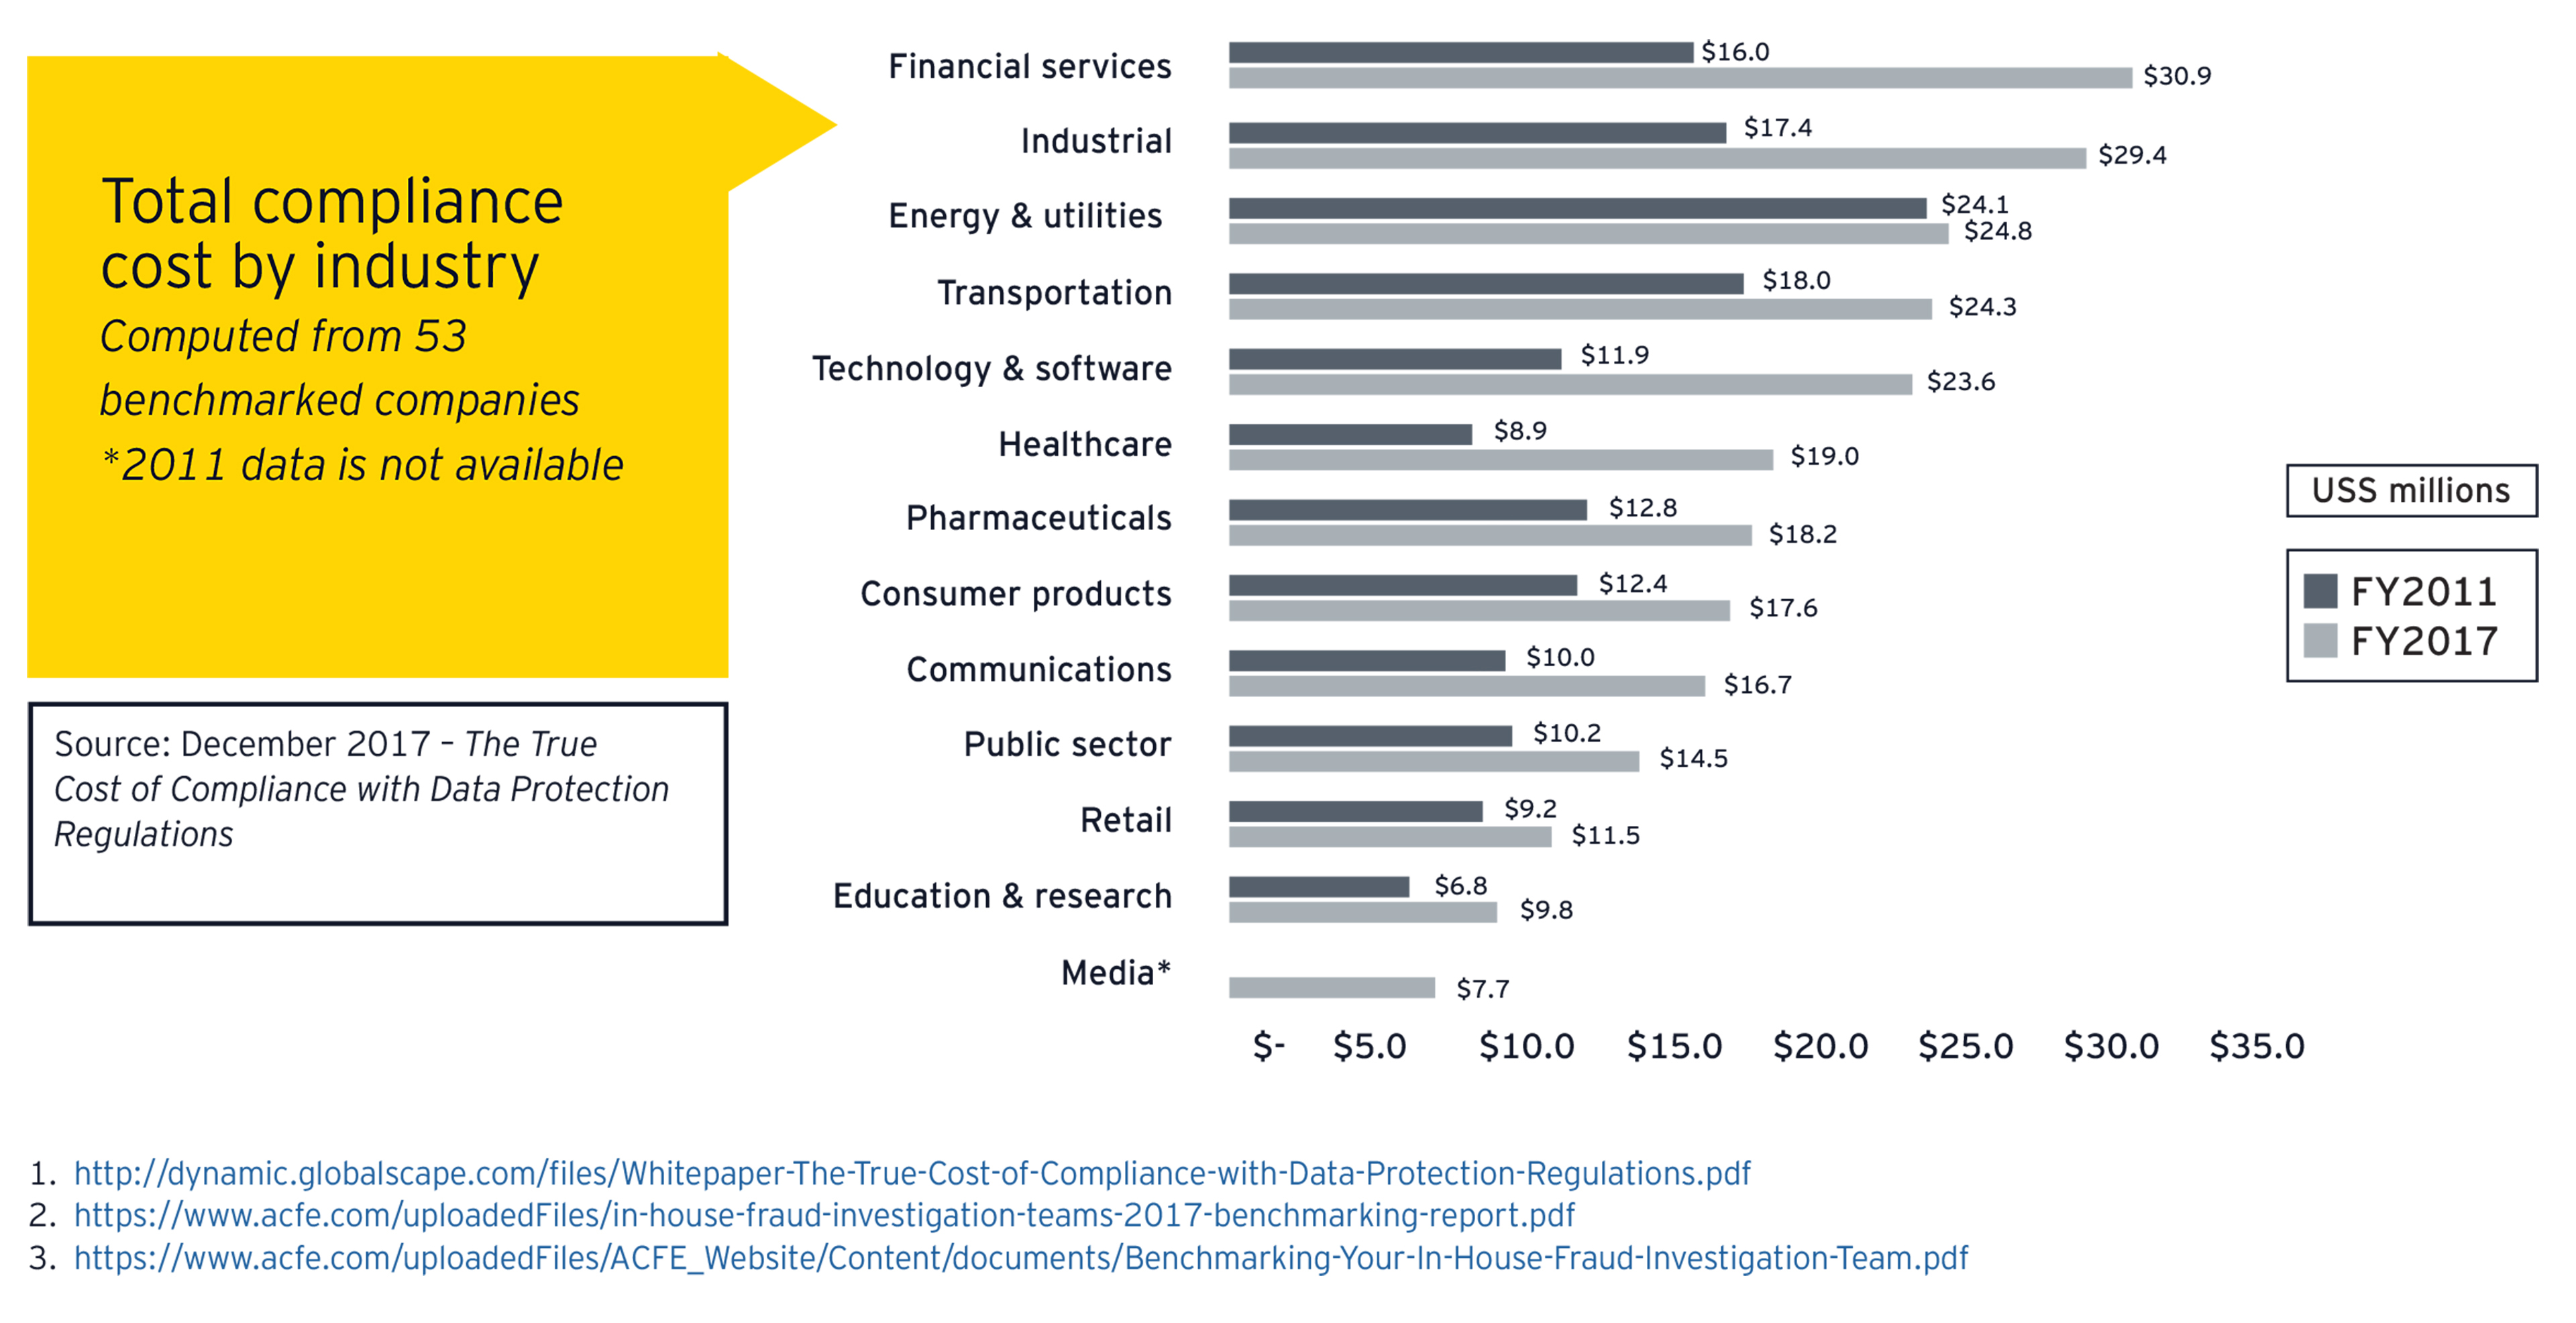 ey-total-compliance-cost-by-industry